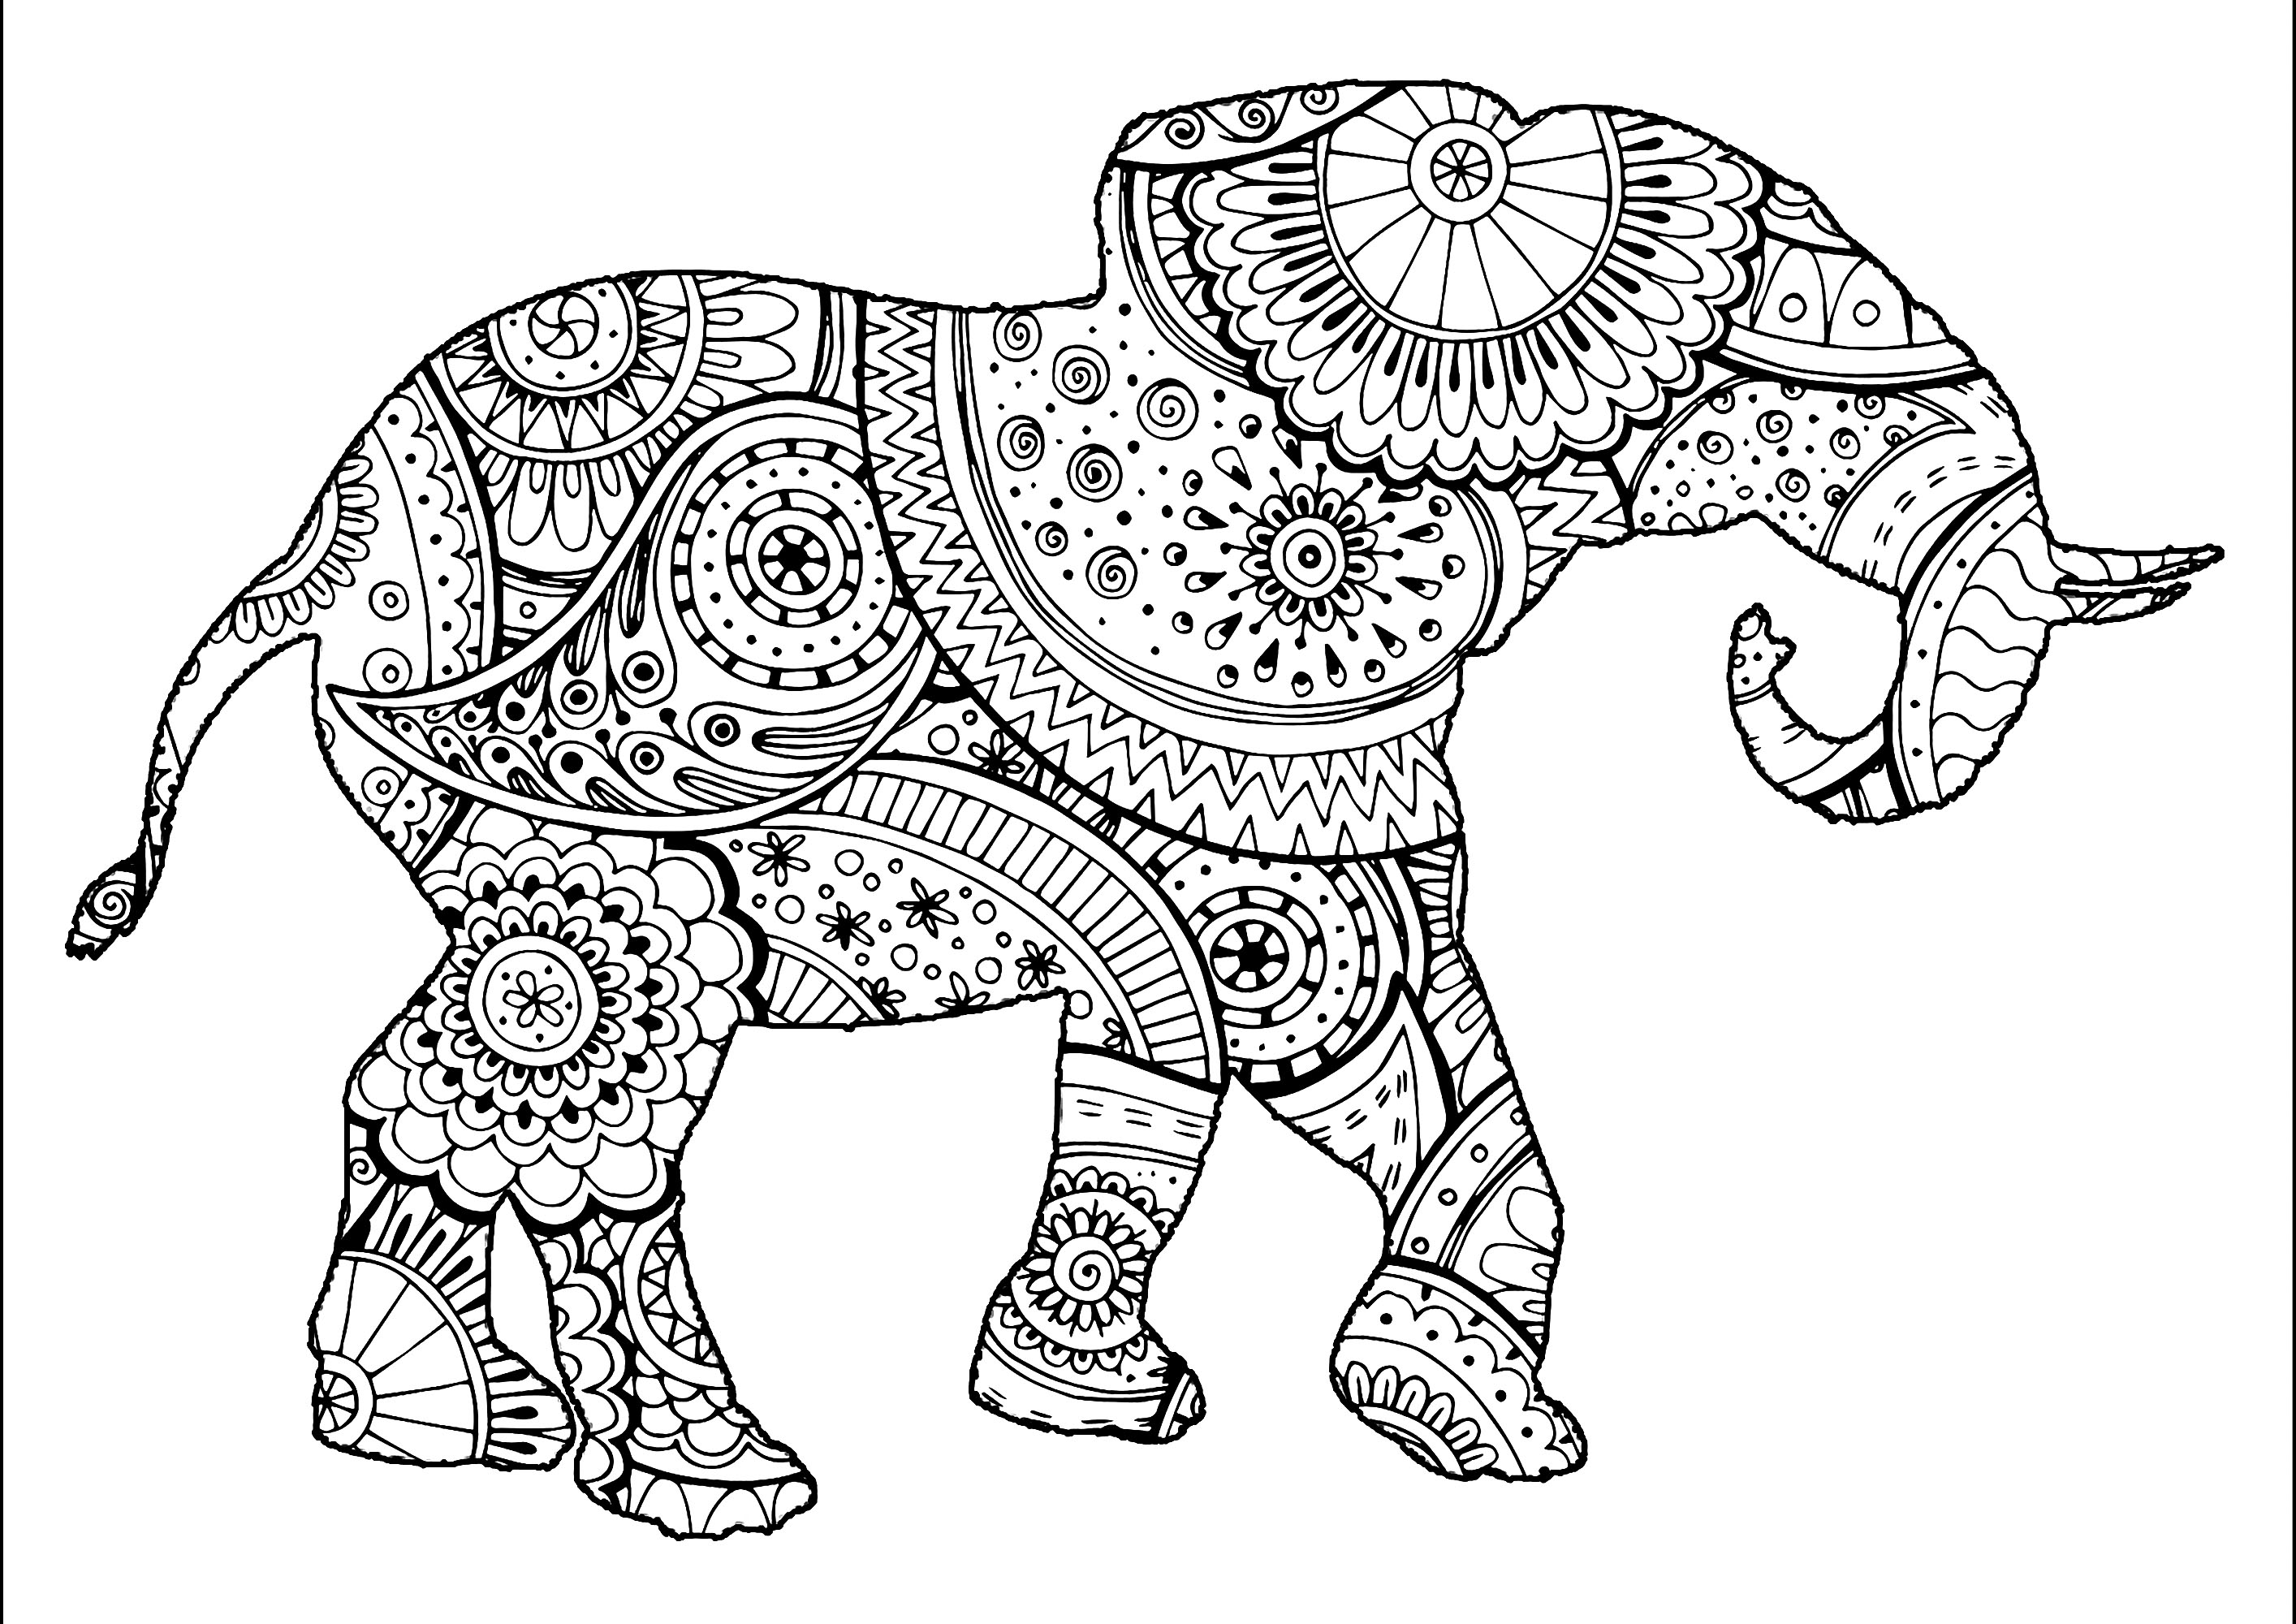 coloring pages elephants elephant coloring pages free download on clipartmag coloring pages elephants